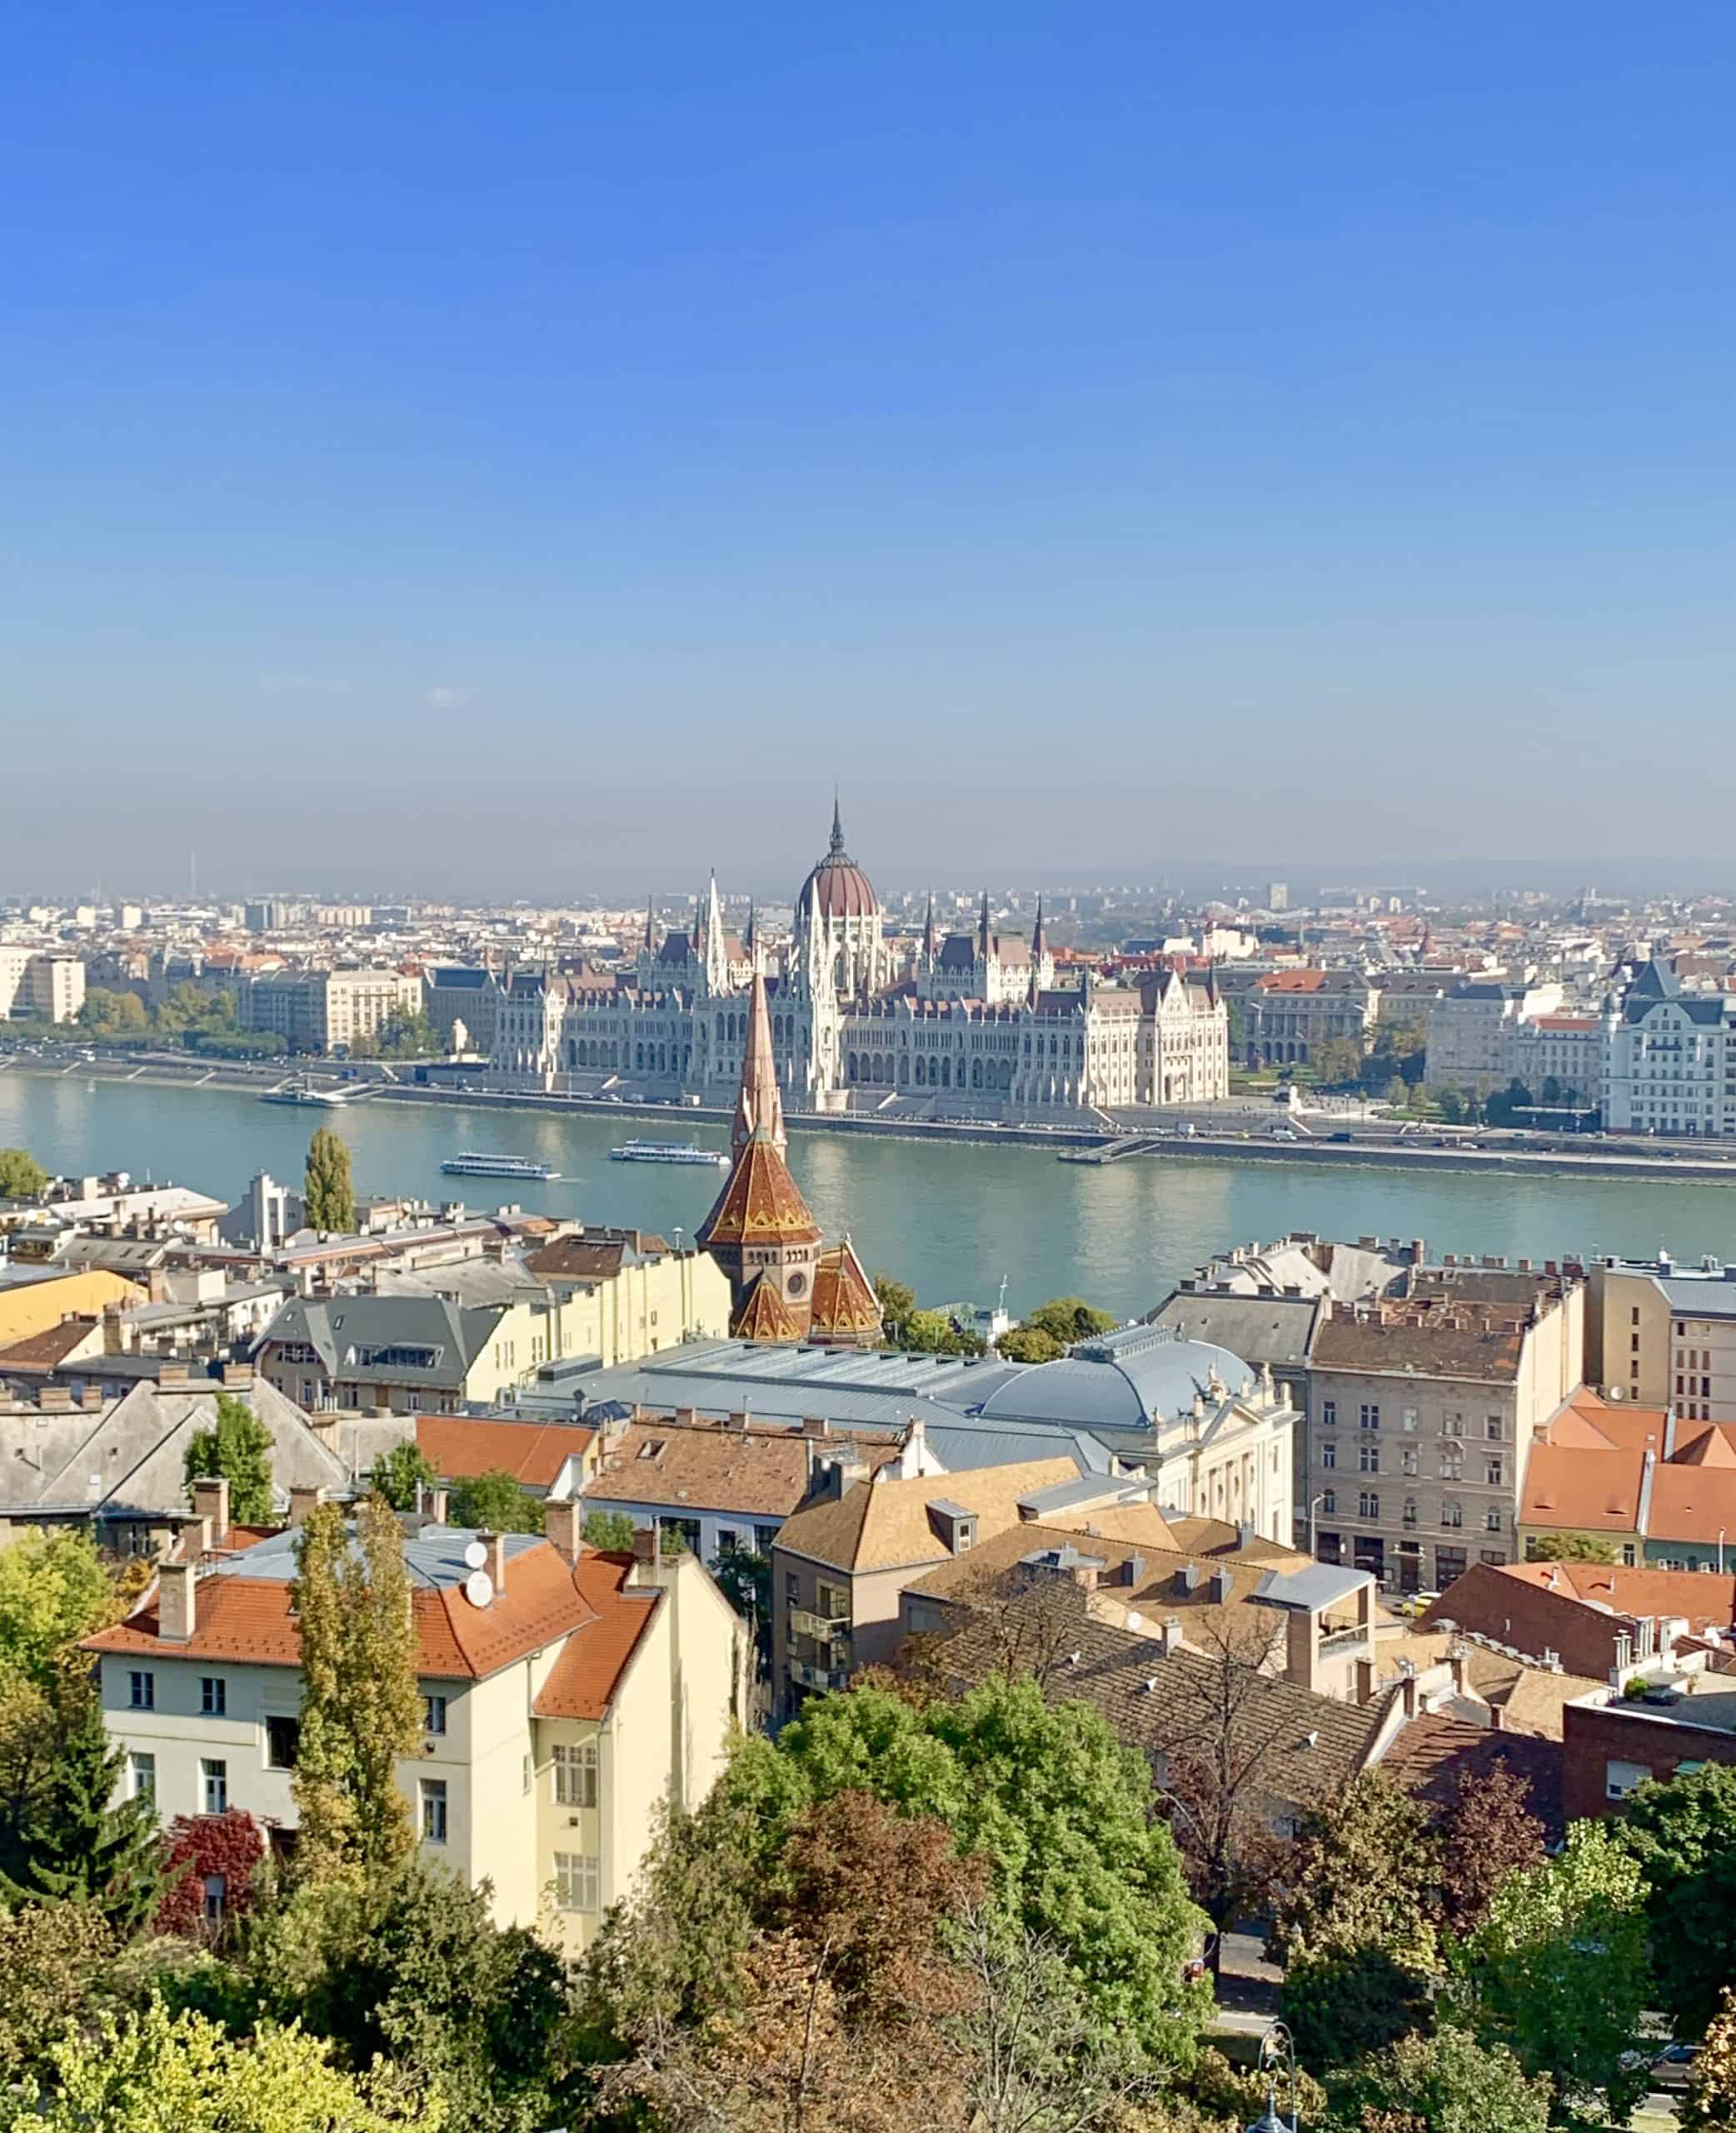 view of Danube and Budapest